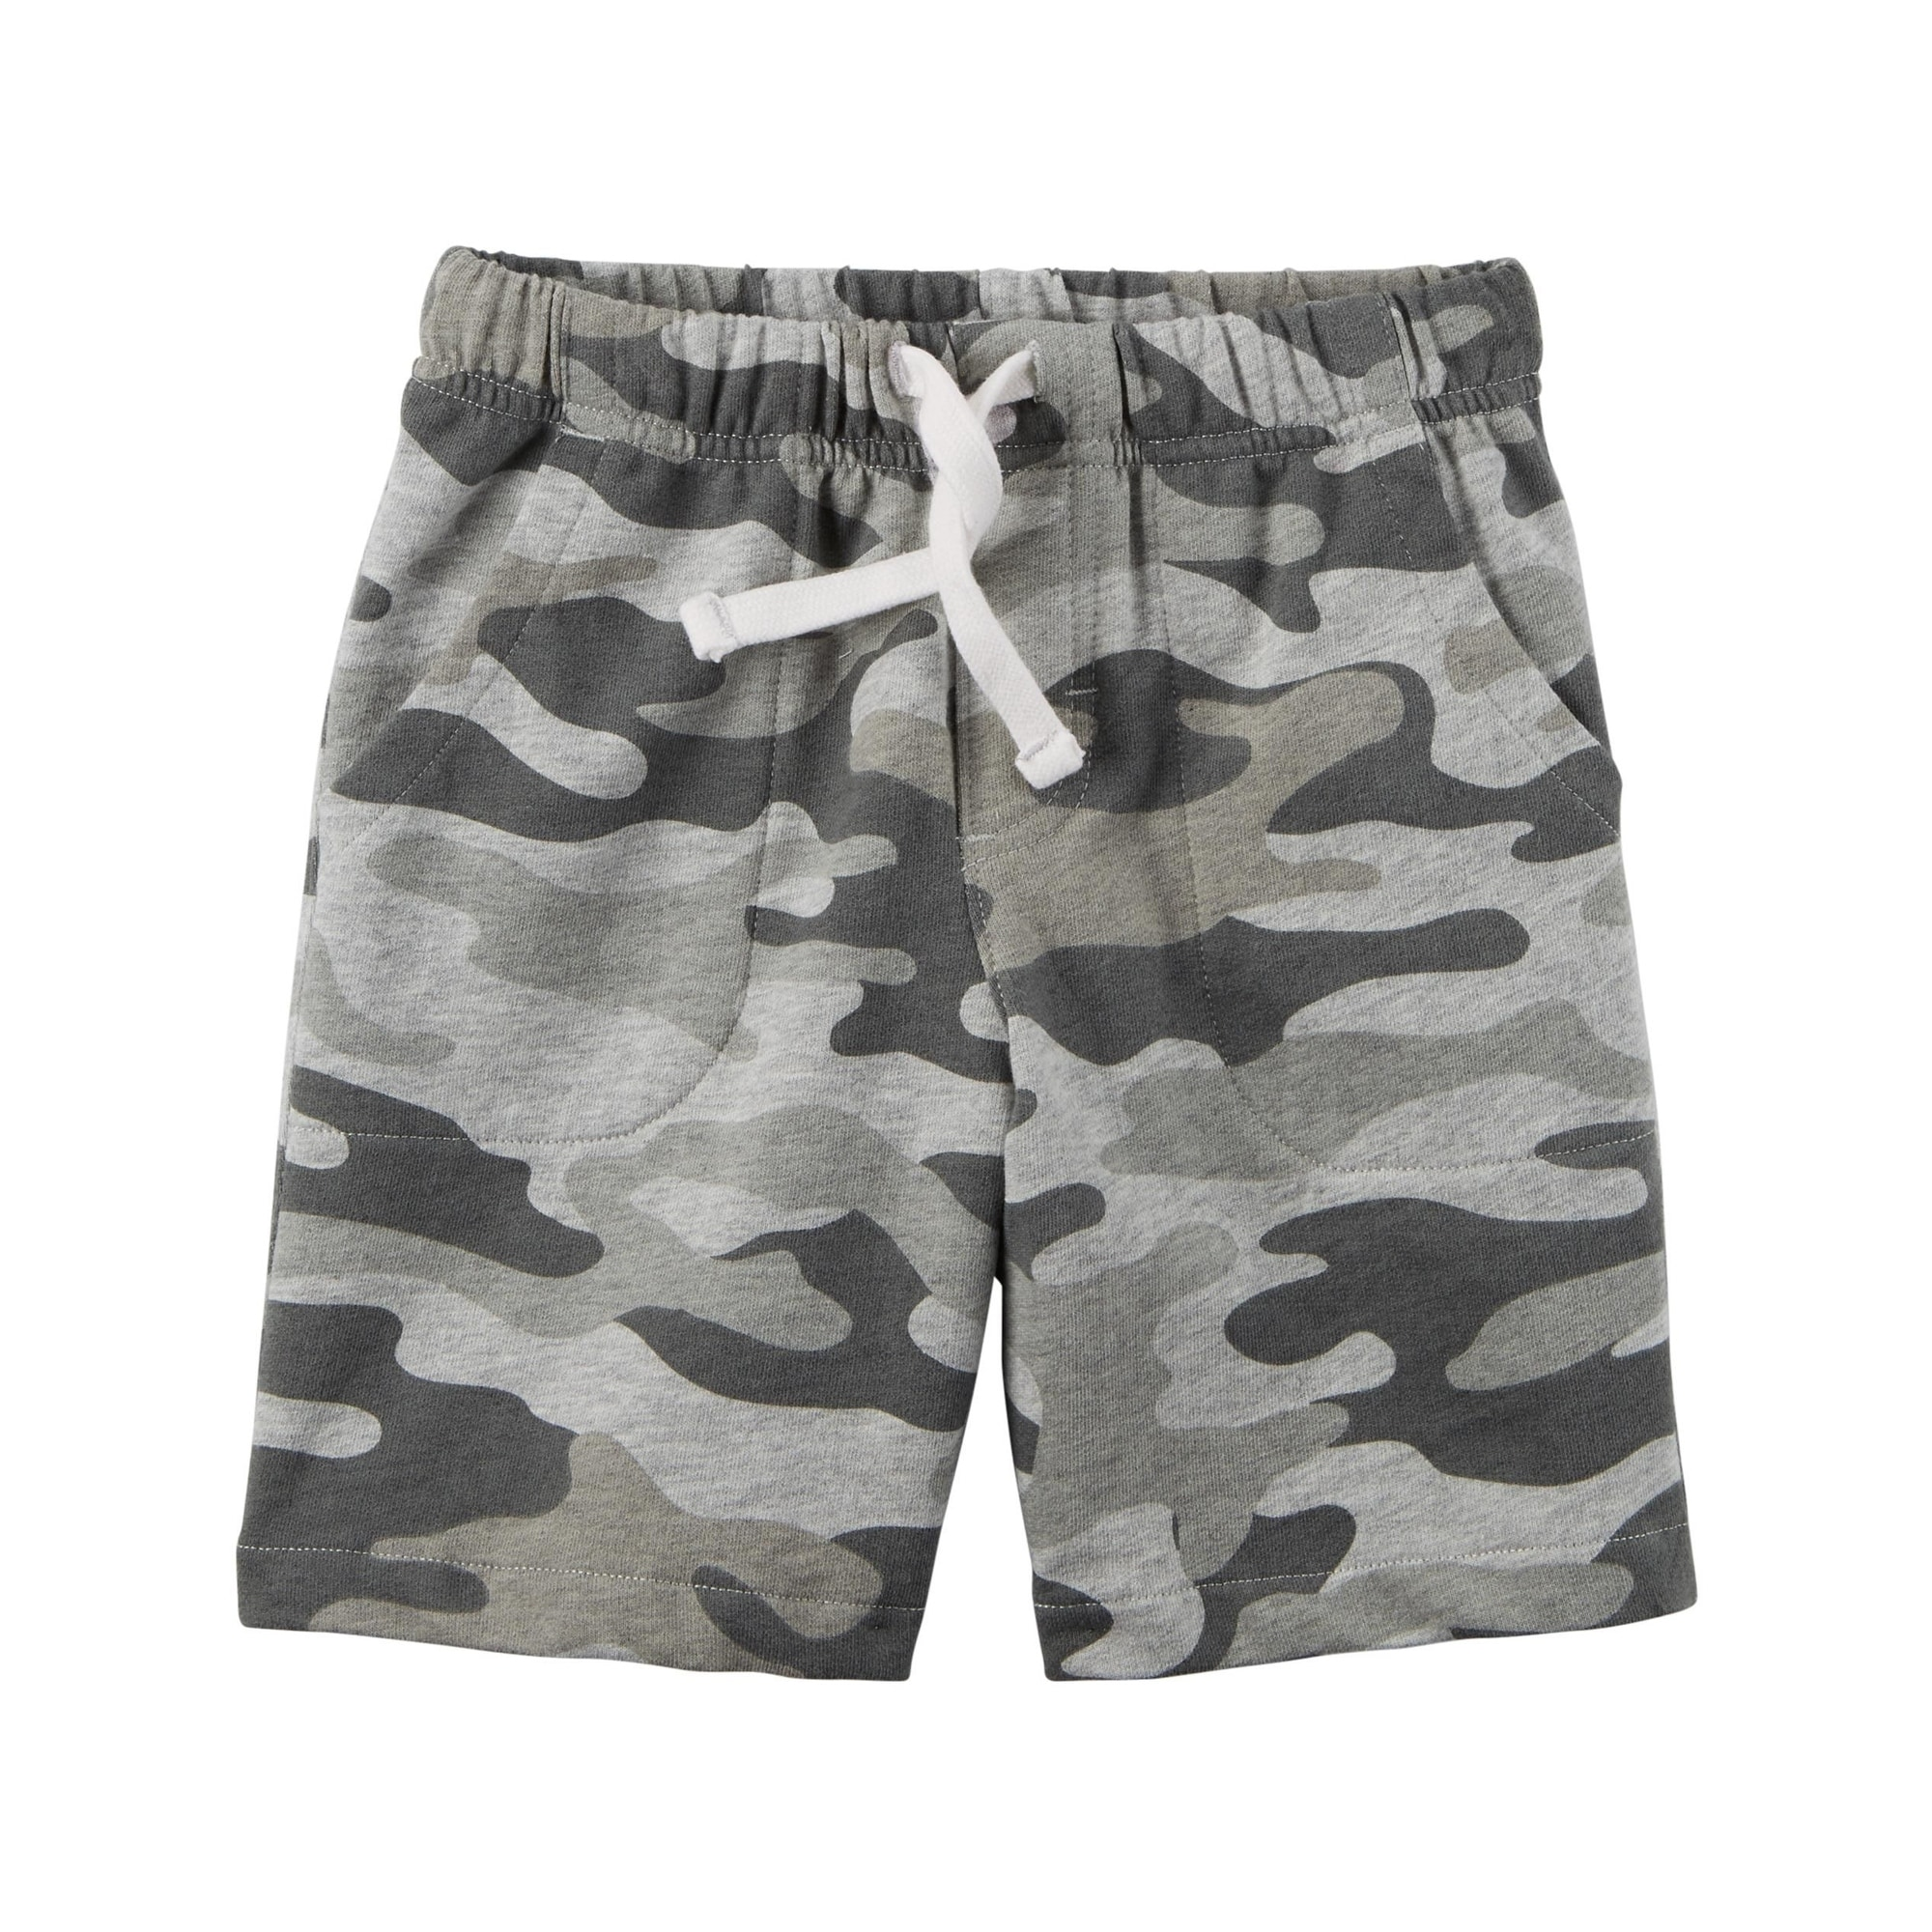 2T Heather Carter/'s Boys/' French Terry Shorts